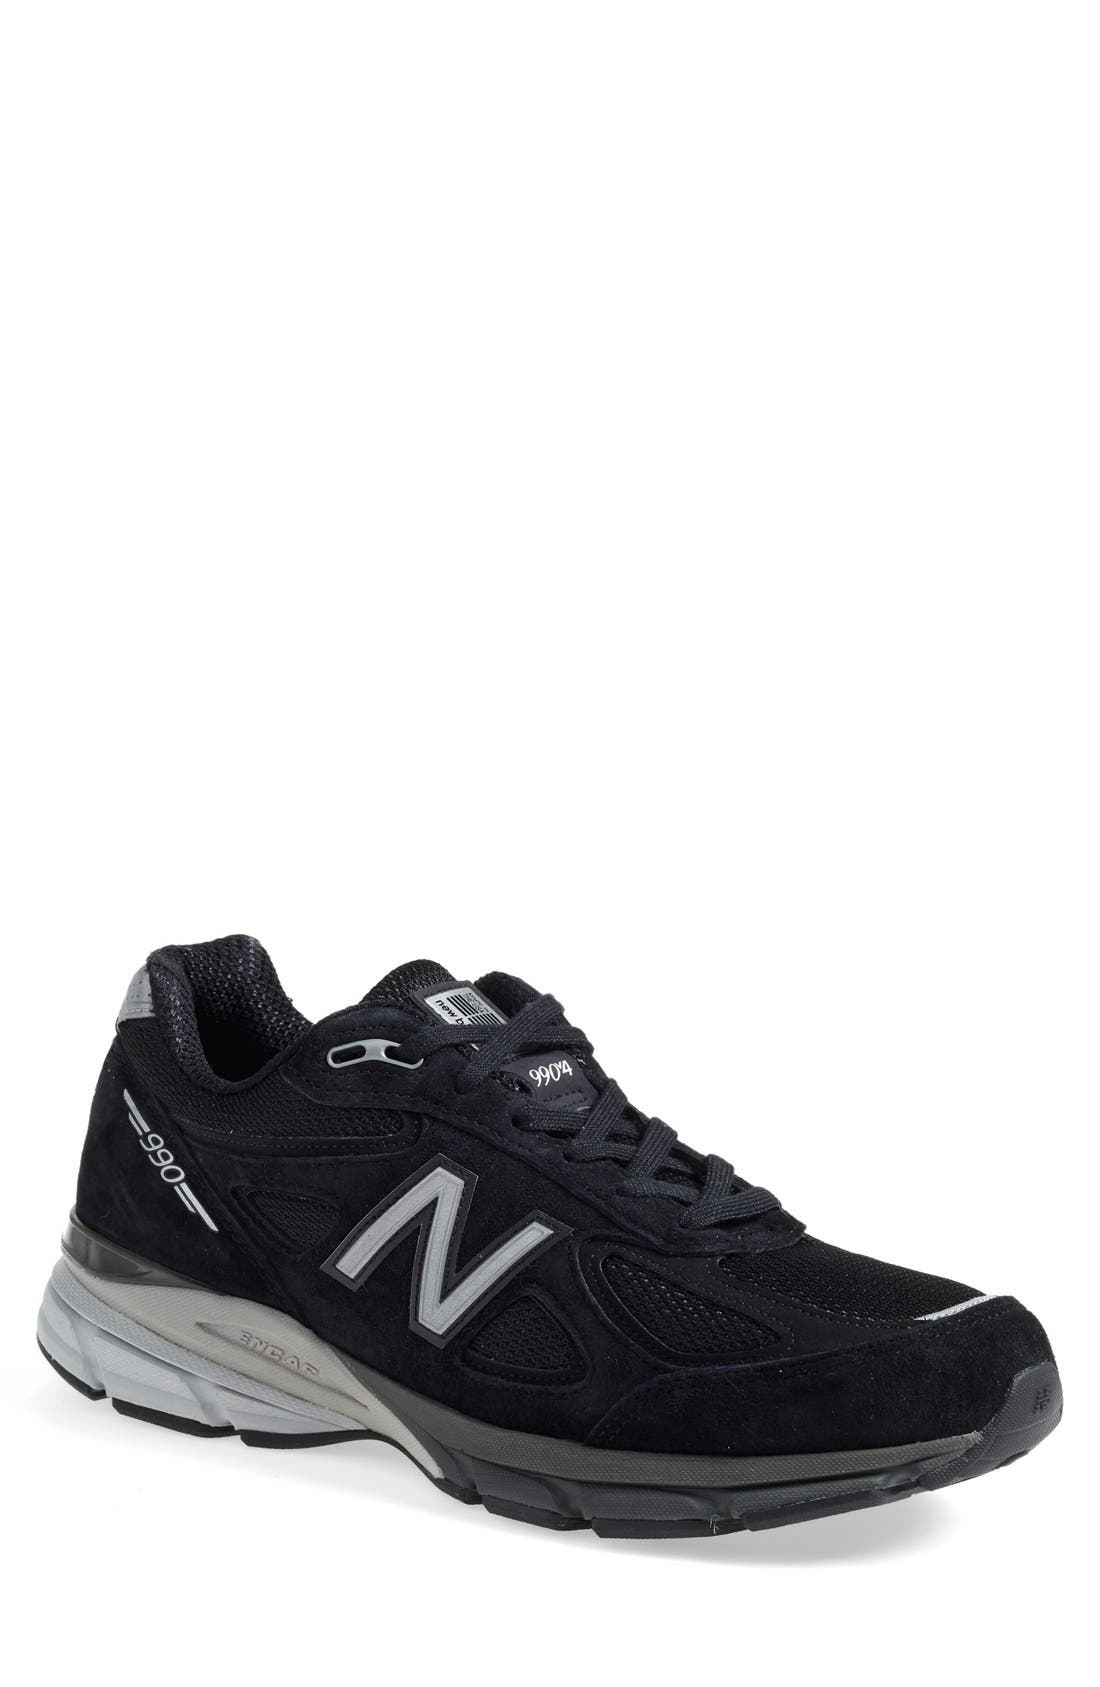 new balance 1500 racing flats nz